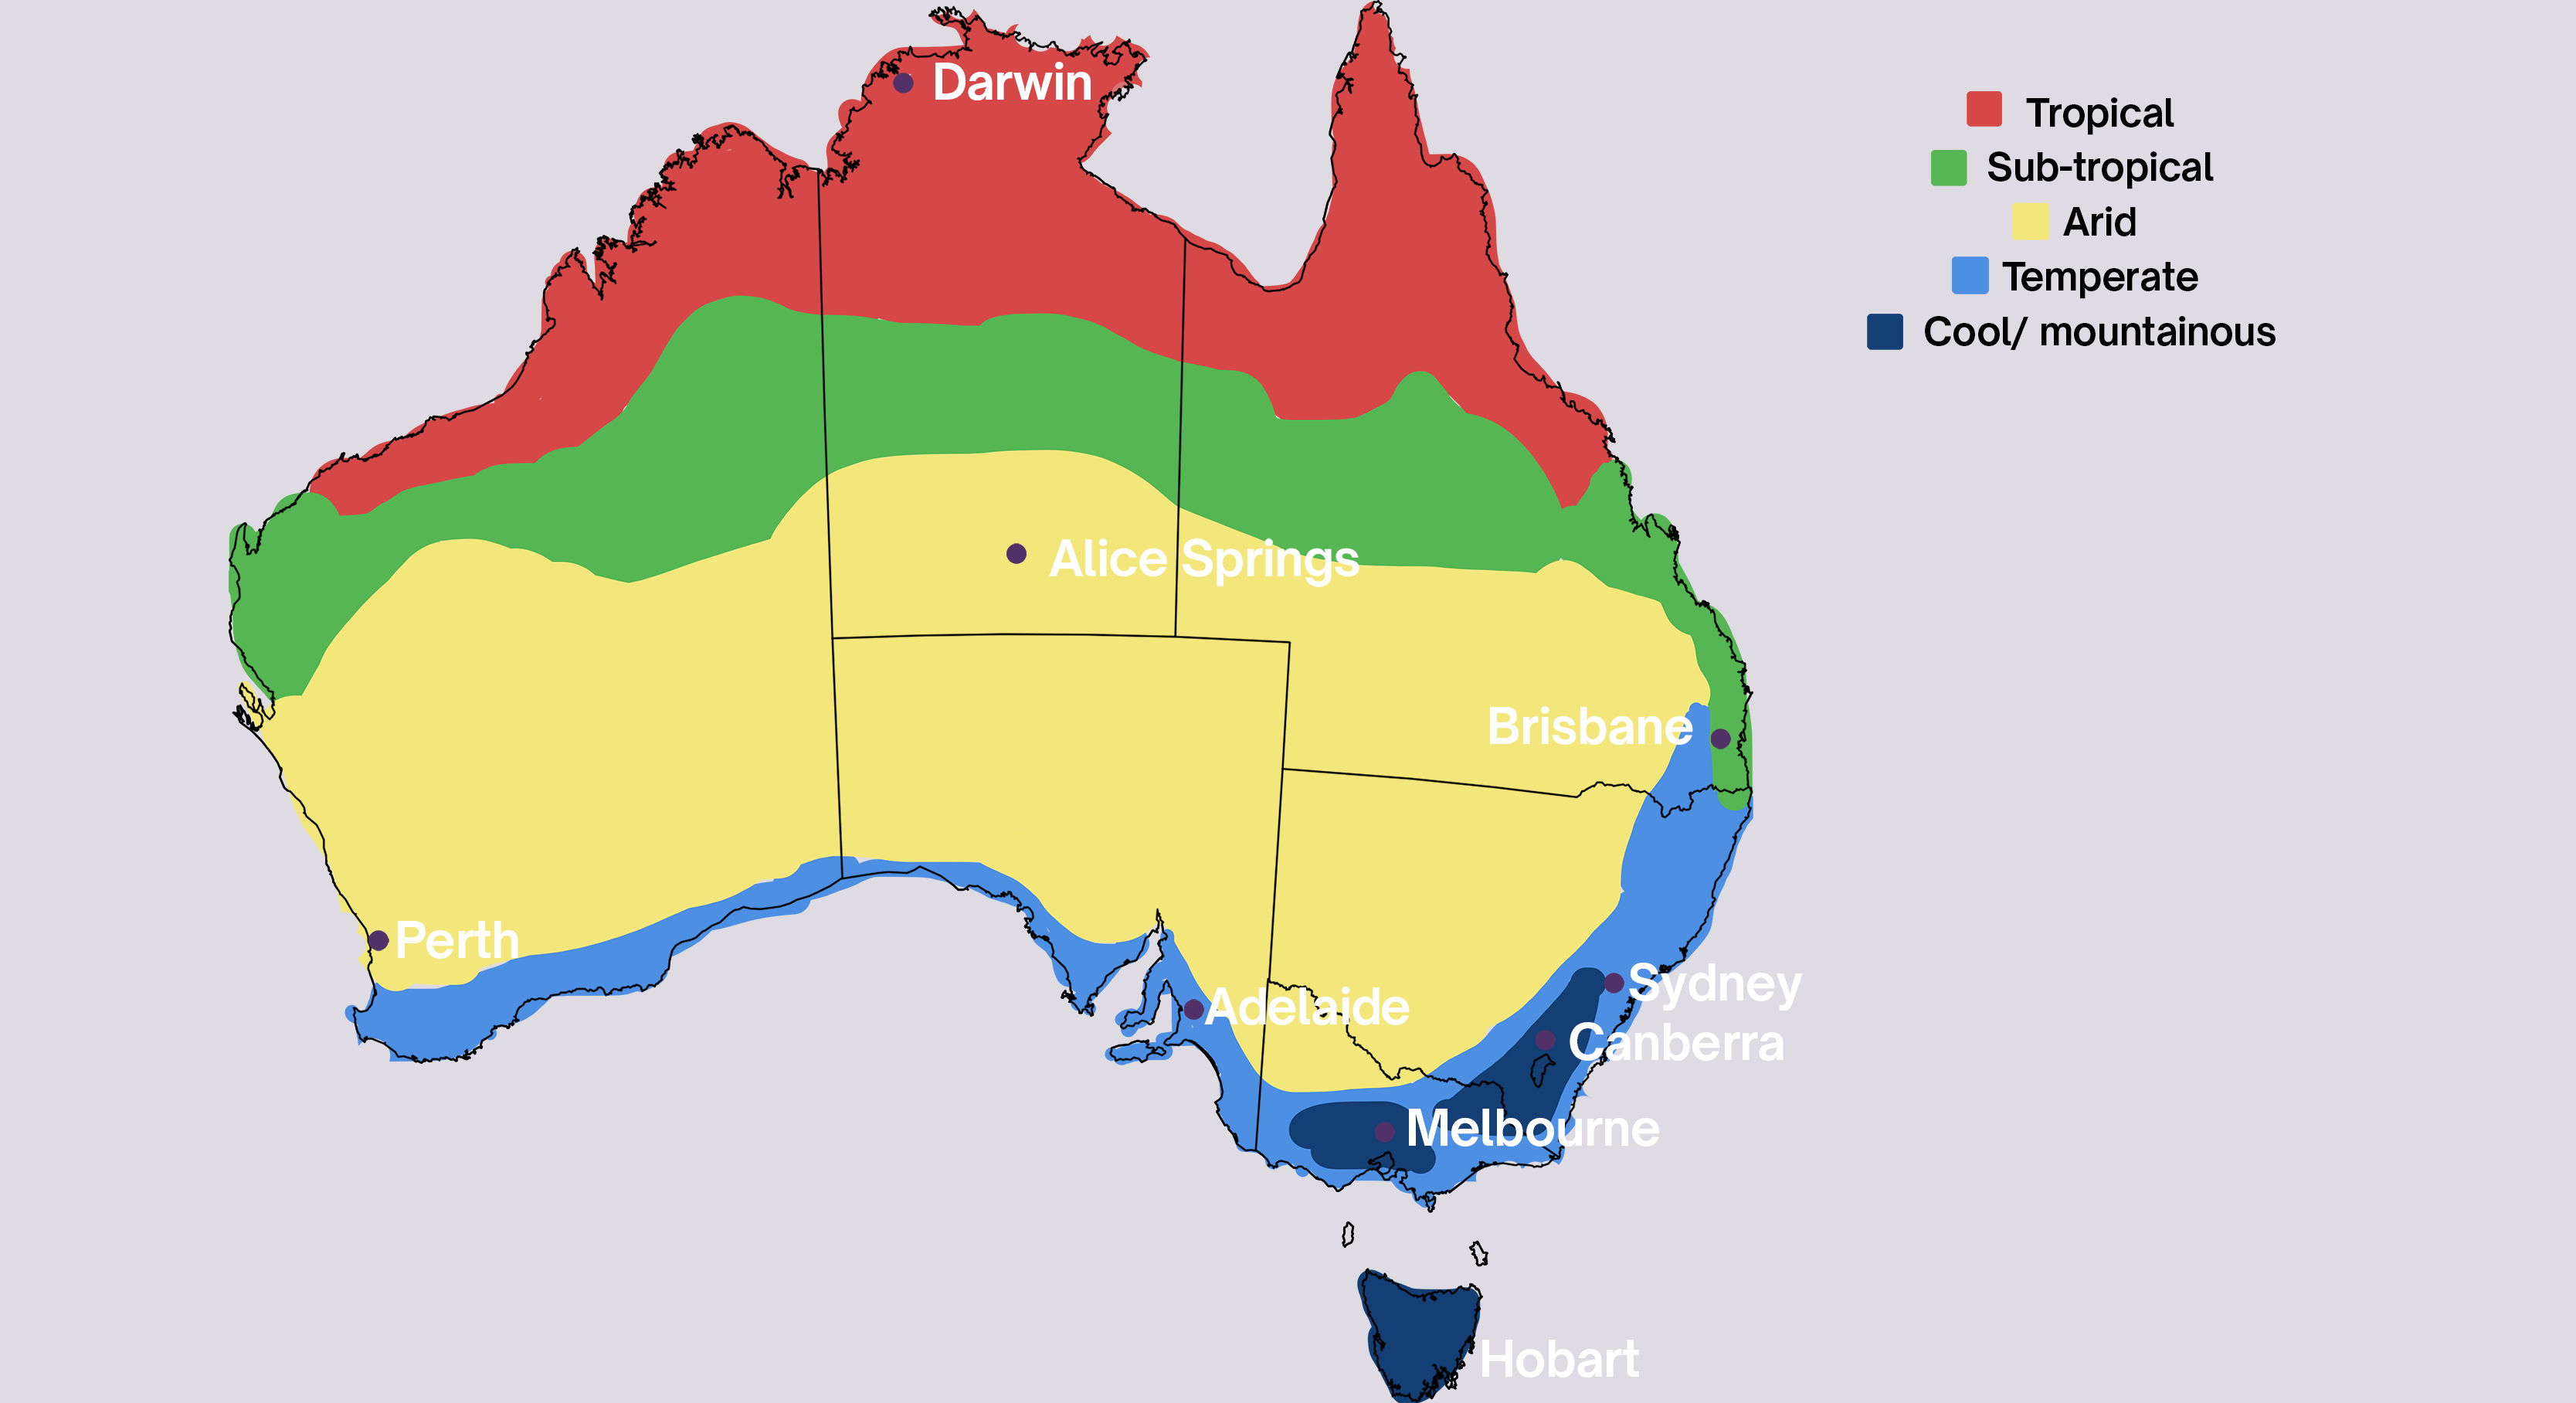 australia-climate zone map for growing seasons